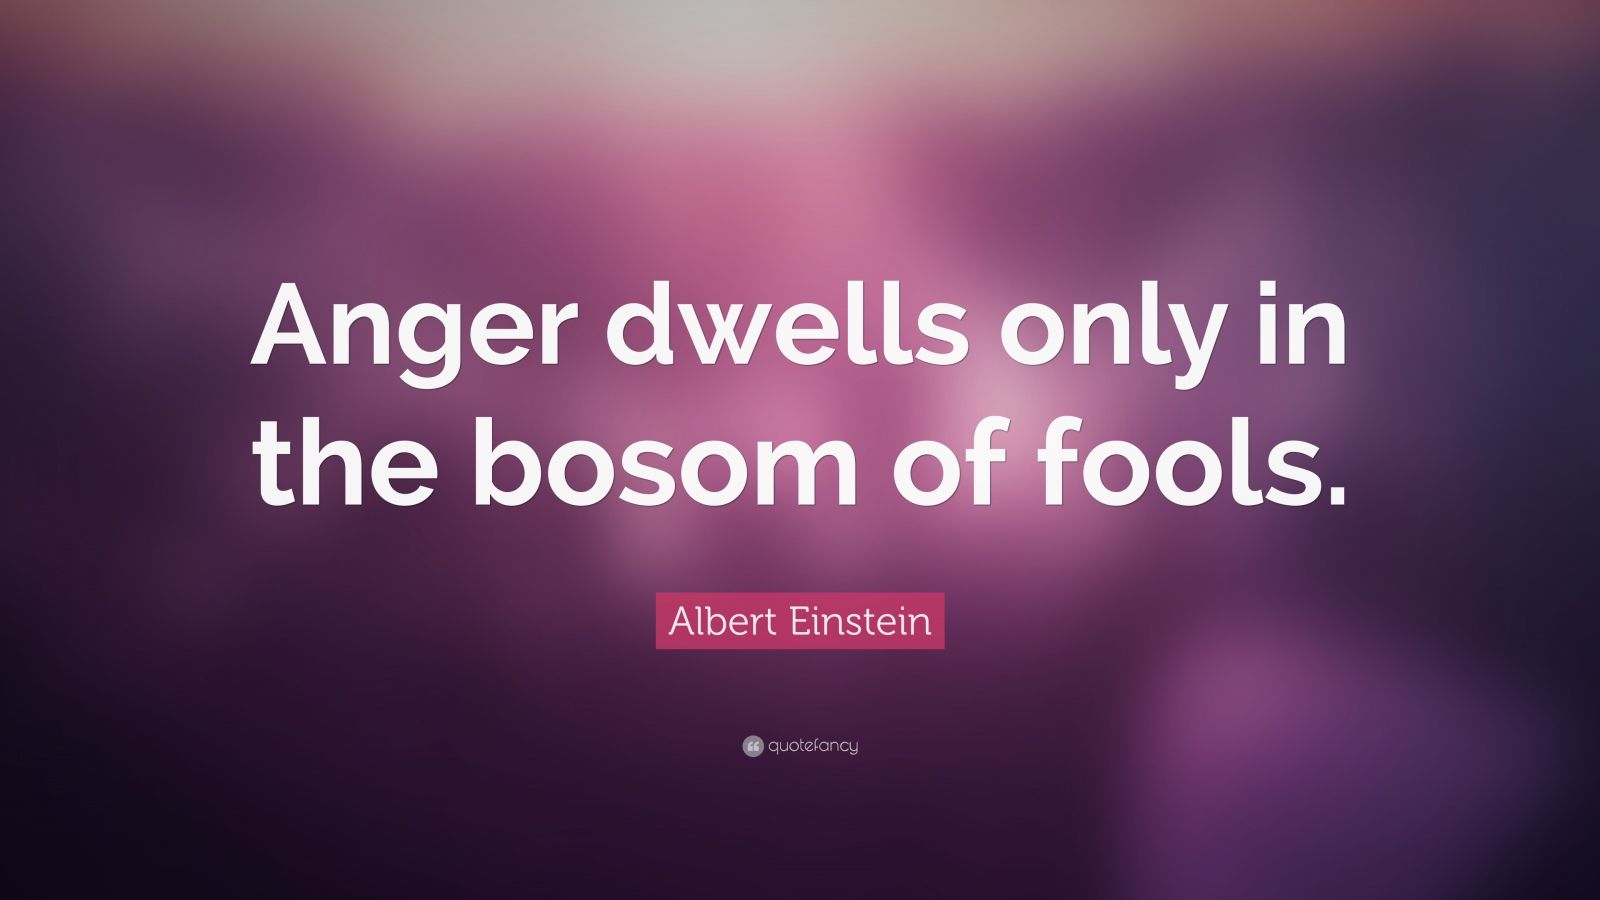 """Albert Einstein Quote: """"Anger dwells only in the bosom of fools."""""""